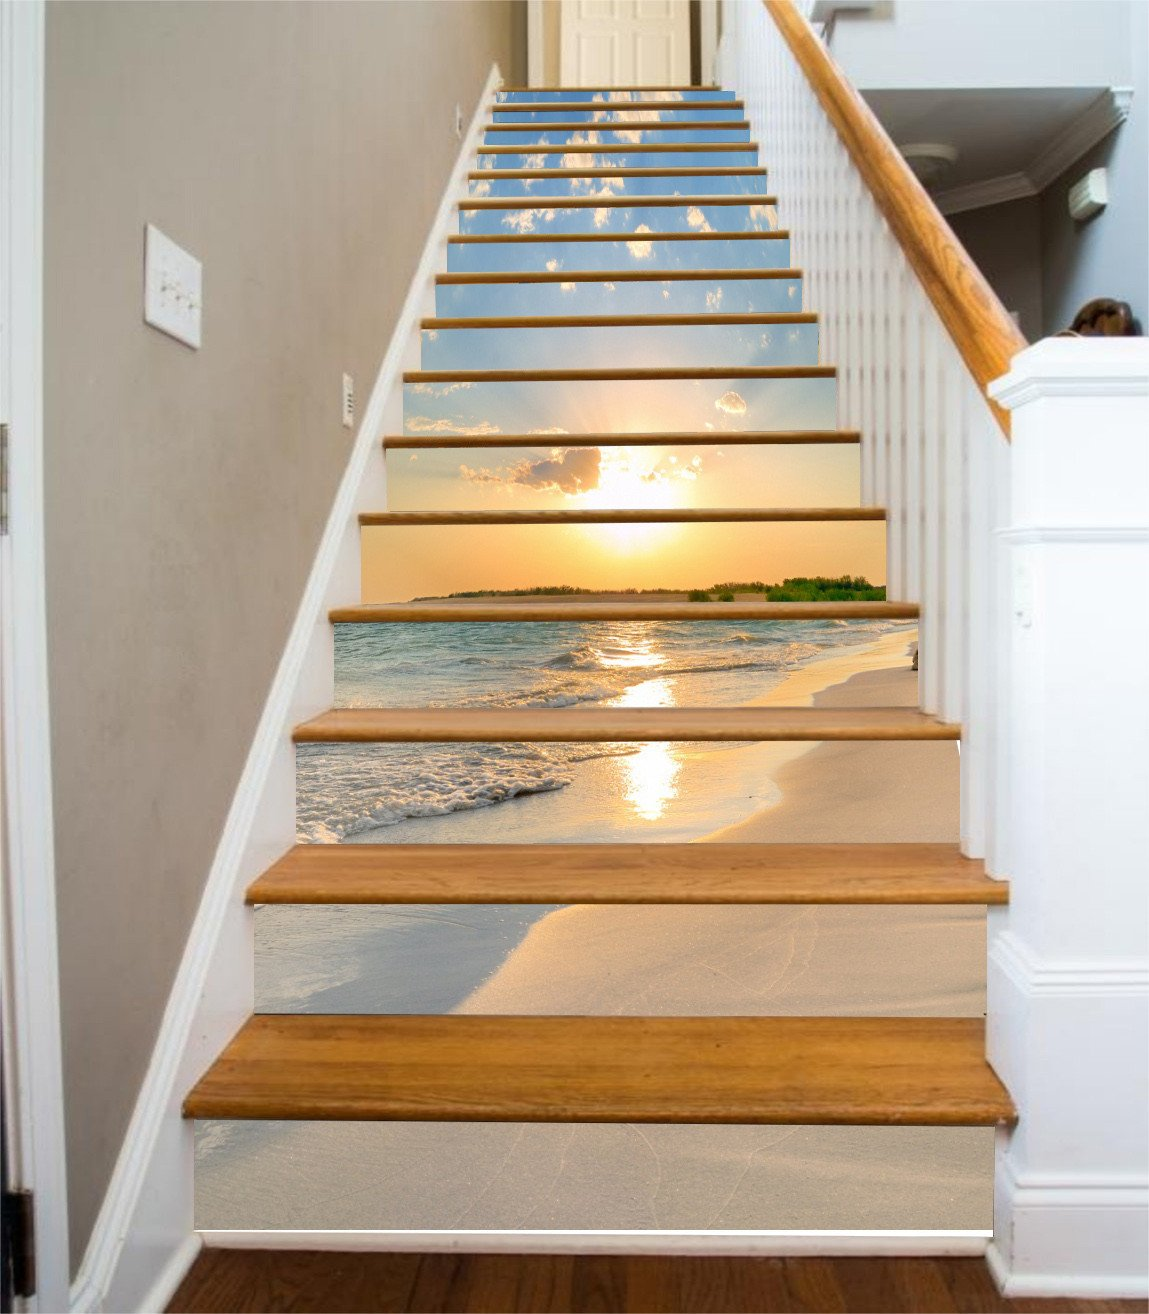 3D Beach Sunset 321 Stair Risers Wallpaper AJ Wallpaper